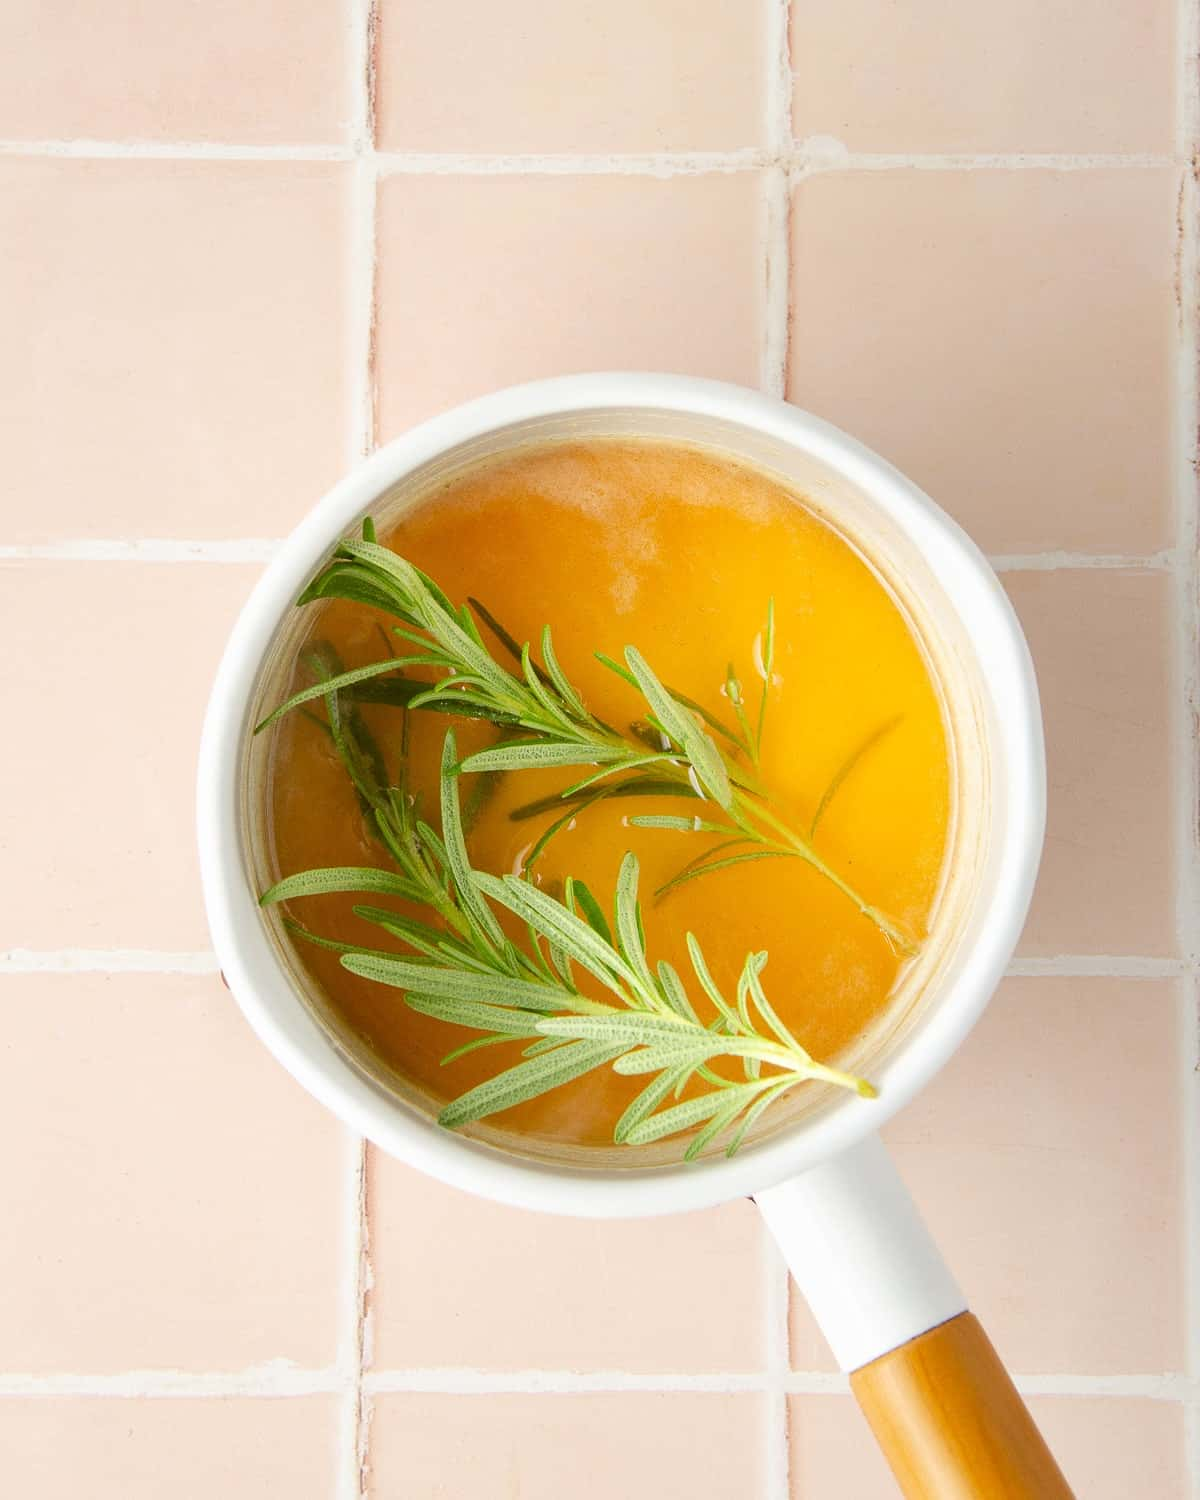 rosemary sprigs inside a pot of honey and water. the pot cools with the rosemary sprigs to take on a rosemary taste.